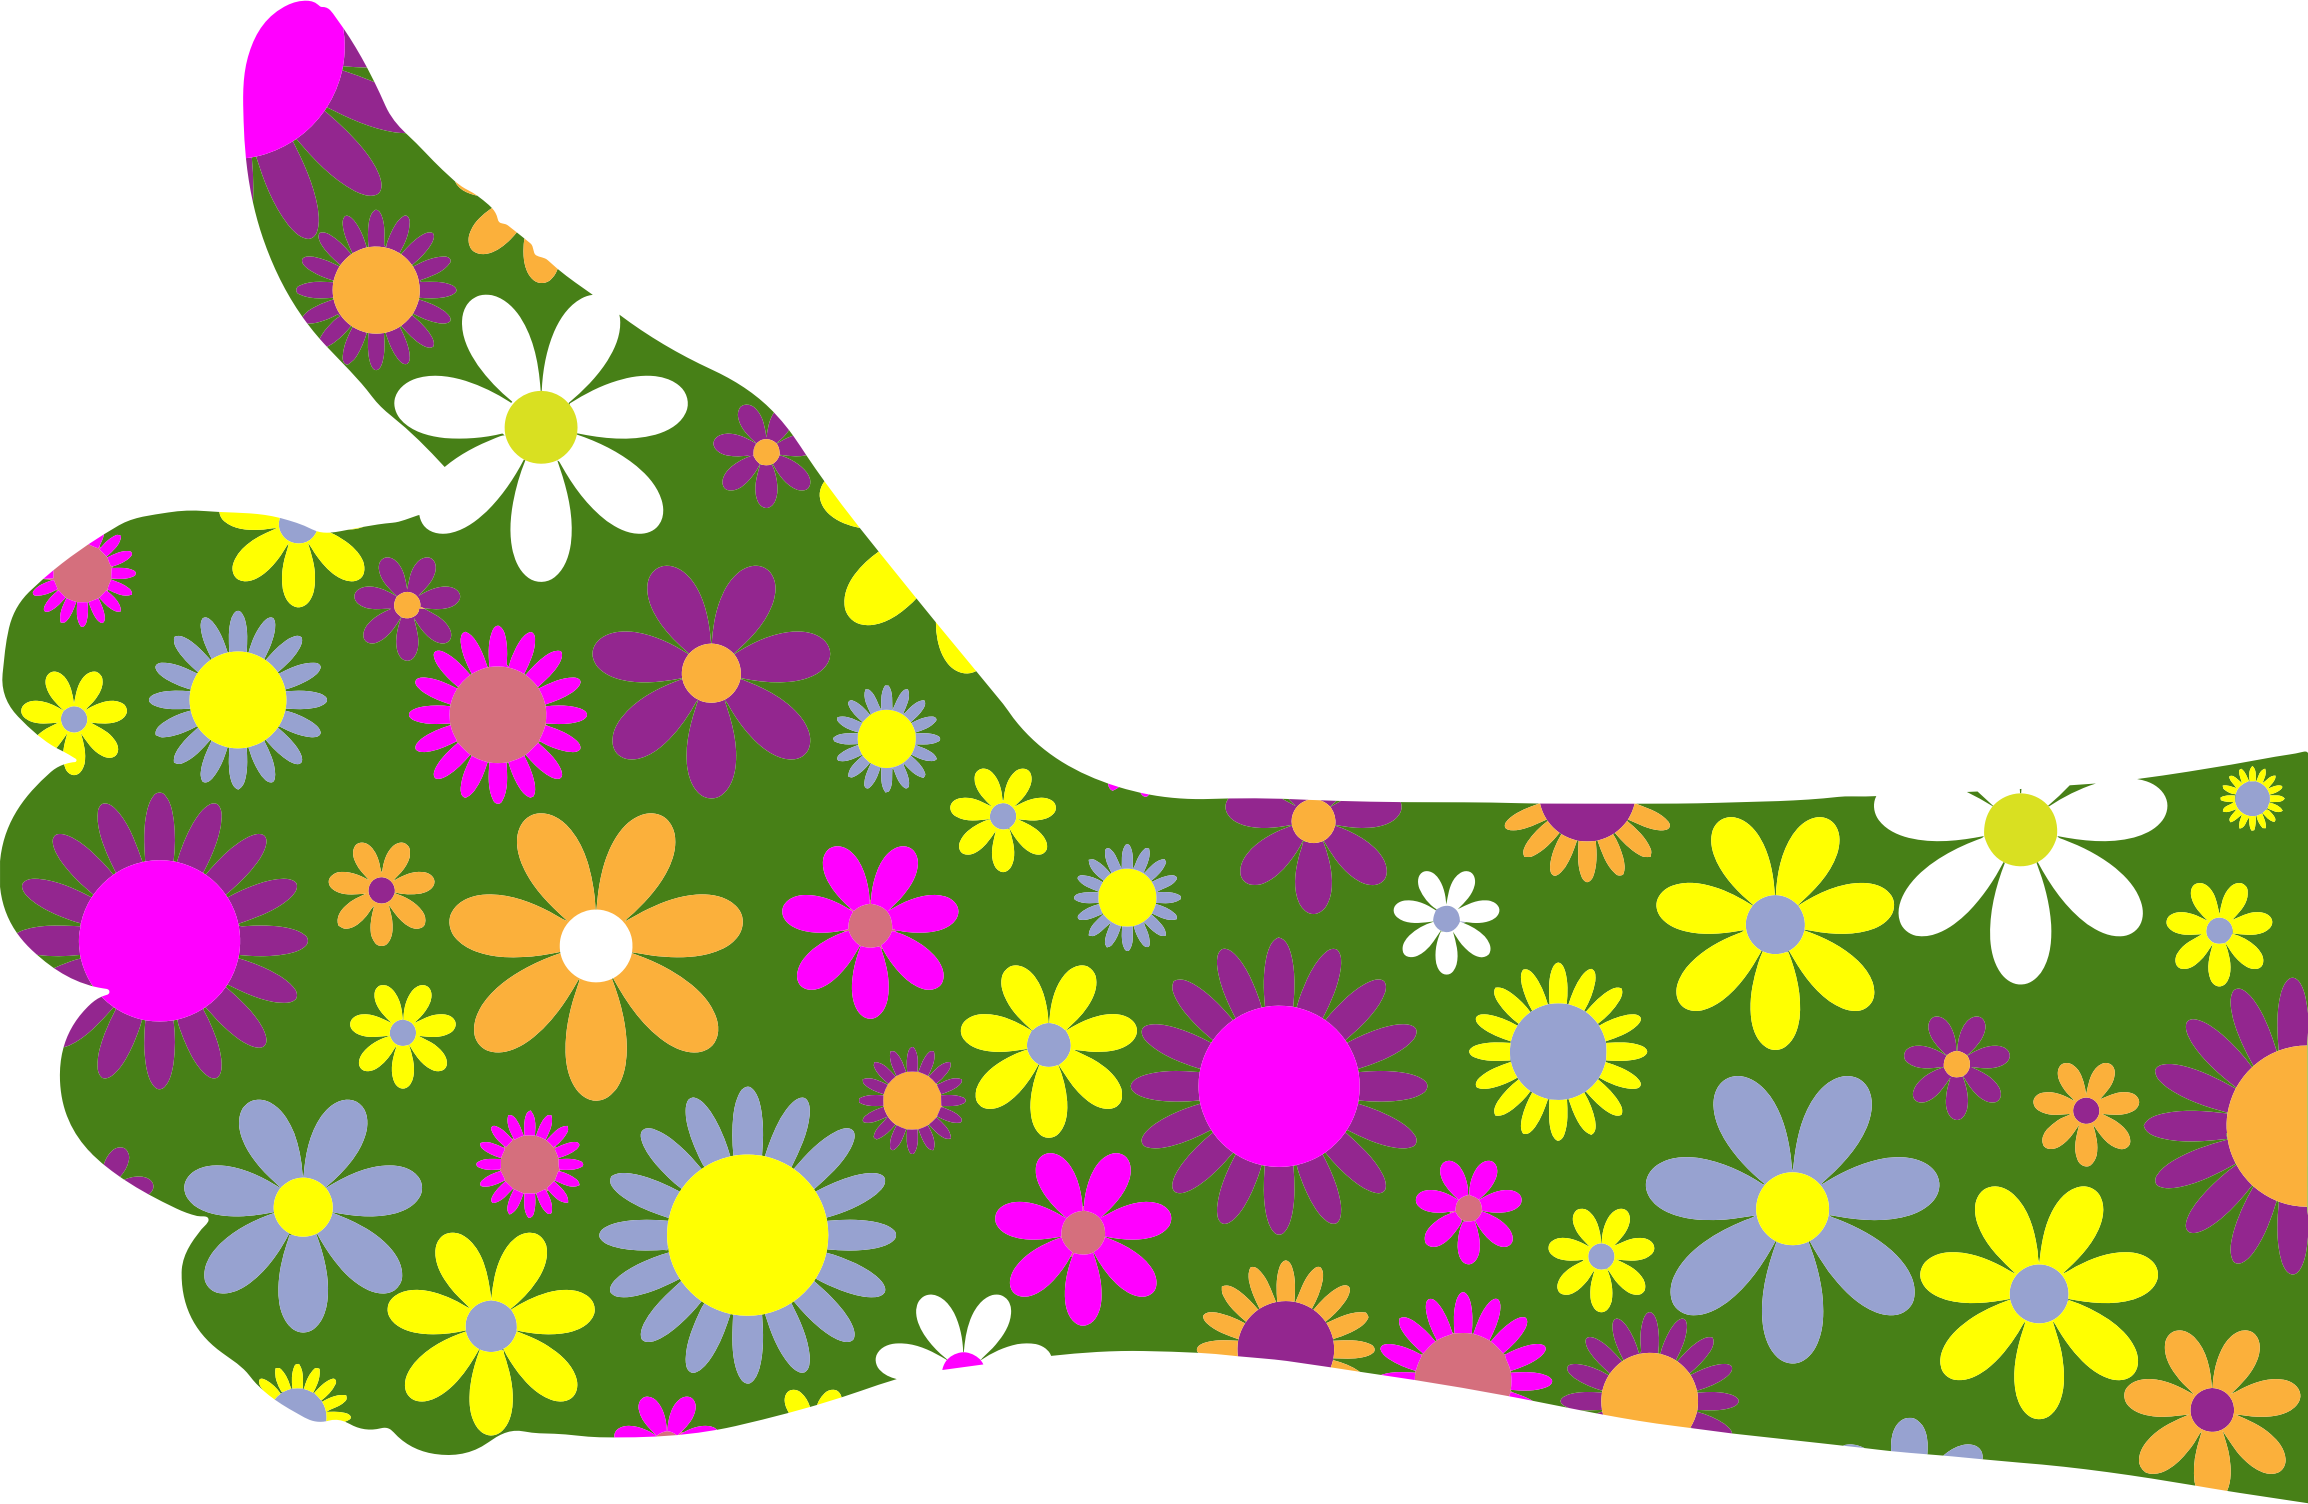 Retro Floral Thumbs Up Arm by GDJ